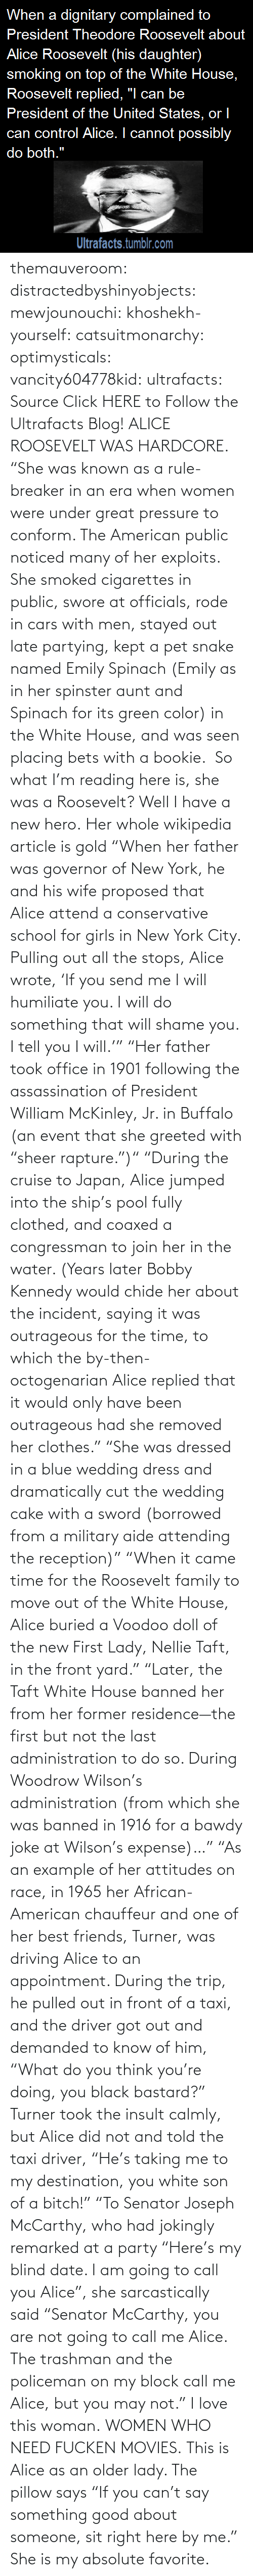 "alice: themauveroom: distractedbyshinyobjects:  mewjounouchi:  khoshekh-yourself:  catsuitmonarchy:  optimysticals:  vancity604778kid:  ultrafacts:     Source Click HERE to Follow the Ultrafacts Blog!     ALICE ROOSEVELT WAS HARDCORE. ""She was known as a rule-breaker in an era when women were under great pressure to conform. The American public noticed many of her exploits. She smoked cigarettes in public, swore at officials, rode in cars with men, stayed out late partying, kept a pet snake named Emily Spinach (Emily as in her spinster aunt and Spinach for its green color) in the White House, and was seen placing bets with a bookie.    So what I'm reading here is, she was a Roosevelt?  Well I have a new hero.  Her whole wikipedia article is gold ""When her father was governor of New York, he and his wife proposed that Alice attend a conservative school for girls in New York City. Pulling out all the stops, Alice wrote, 'If you send me I will humiliate you. I will do something that will shame you. I tell you I will.'"" ""Her father took office in 1901 following the assassination of President William McKinley, Jr. in Buffalo (an event that she greeted with ""sheer rapture."")"" ""During the cruise to Japan, Alice jumped into the ship's pool fully clothed, and coaxed a congressman to join her in the water. (Years later Bobby Kennedy would chide her about the incident, saying it was outrageous for the time, to which the by-then-octogenarian Alice replied that it would only have been outrageous had she removed her clothes."" ""She was dressed in a blue wedding dress and dramatically cut the wedding cake with a sword (borrowed from a military aide attending the reception)"" ""When it came time for the Roosevelt family to move out of the White House, Alice buried a Voodoo doll of the new First Lady, Nellie Taft, in the front yard."" ""Later, the Taft White House banned her from her former residence—the first but not the last administration to do so. During Woodrow Wilson's administration (from which she was banned in 1916 for a bawdy joke at Wilson's expense)…"" ""As an example of her attitudes on race, in 1965 her African-American chauffeur and one of her best friends, Turner, was driving Alice to an appointment. During the trip, he pulled out in front of a taxi, and the driver got out and demanded to know of him, ""What do you think you're doing, you black bastard?"" Turner took the insult calmly, but Alice did not and told the taxi driver, ""He's taking me to my destination, you white son of a bitch!"" ""To Senator Joseph McCarthy, who had jokingly remarked at a party ""Here's my blind date. I am going to call you Alice"", she sarcastically said ""Senator McCarthy, you are not going to call me Alice. The trashman and the policeman on my block call me Alice, but you may not.""  I love this woman.  WOMEN WHO NEED FUCKEN MOVIES.   This is Alice as an older lady. The pillow says ""If you can't say something good about someone, sit right here by me.""  She is my absolute favorite."